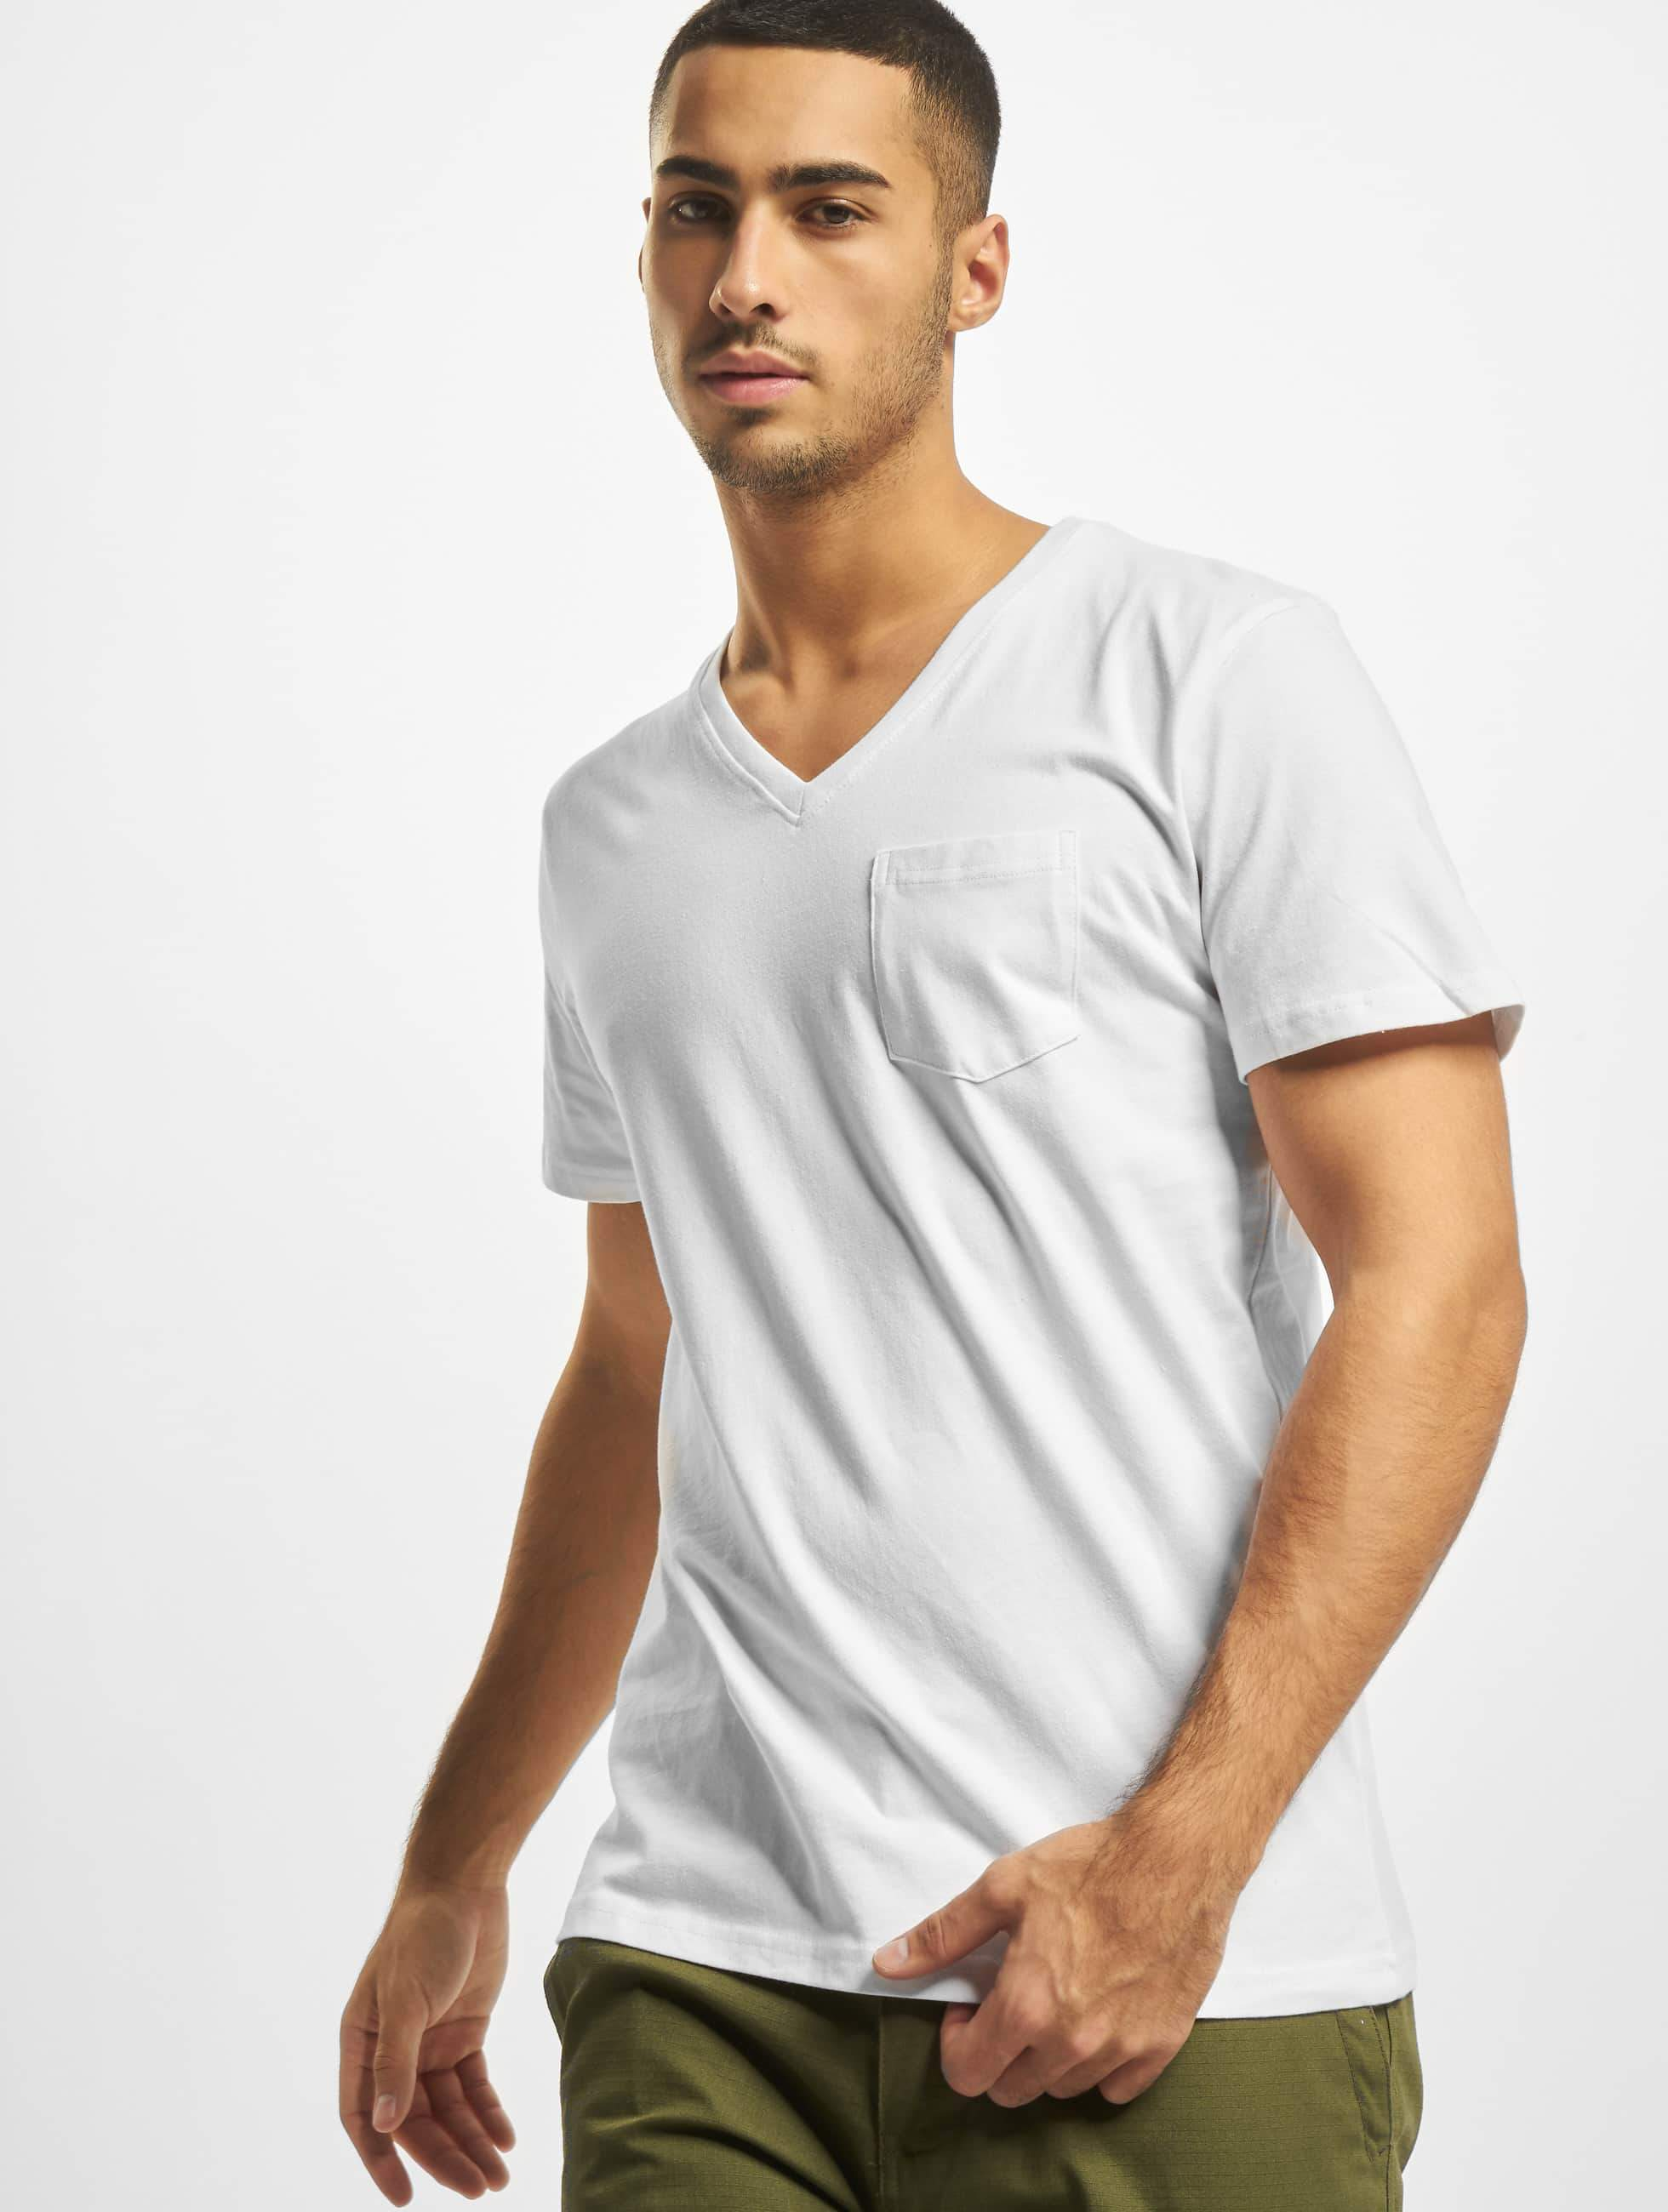 DEF / T-Shirt V-Neck in white 2XL